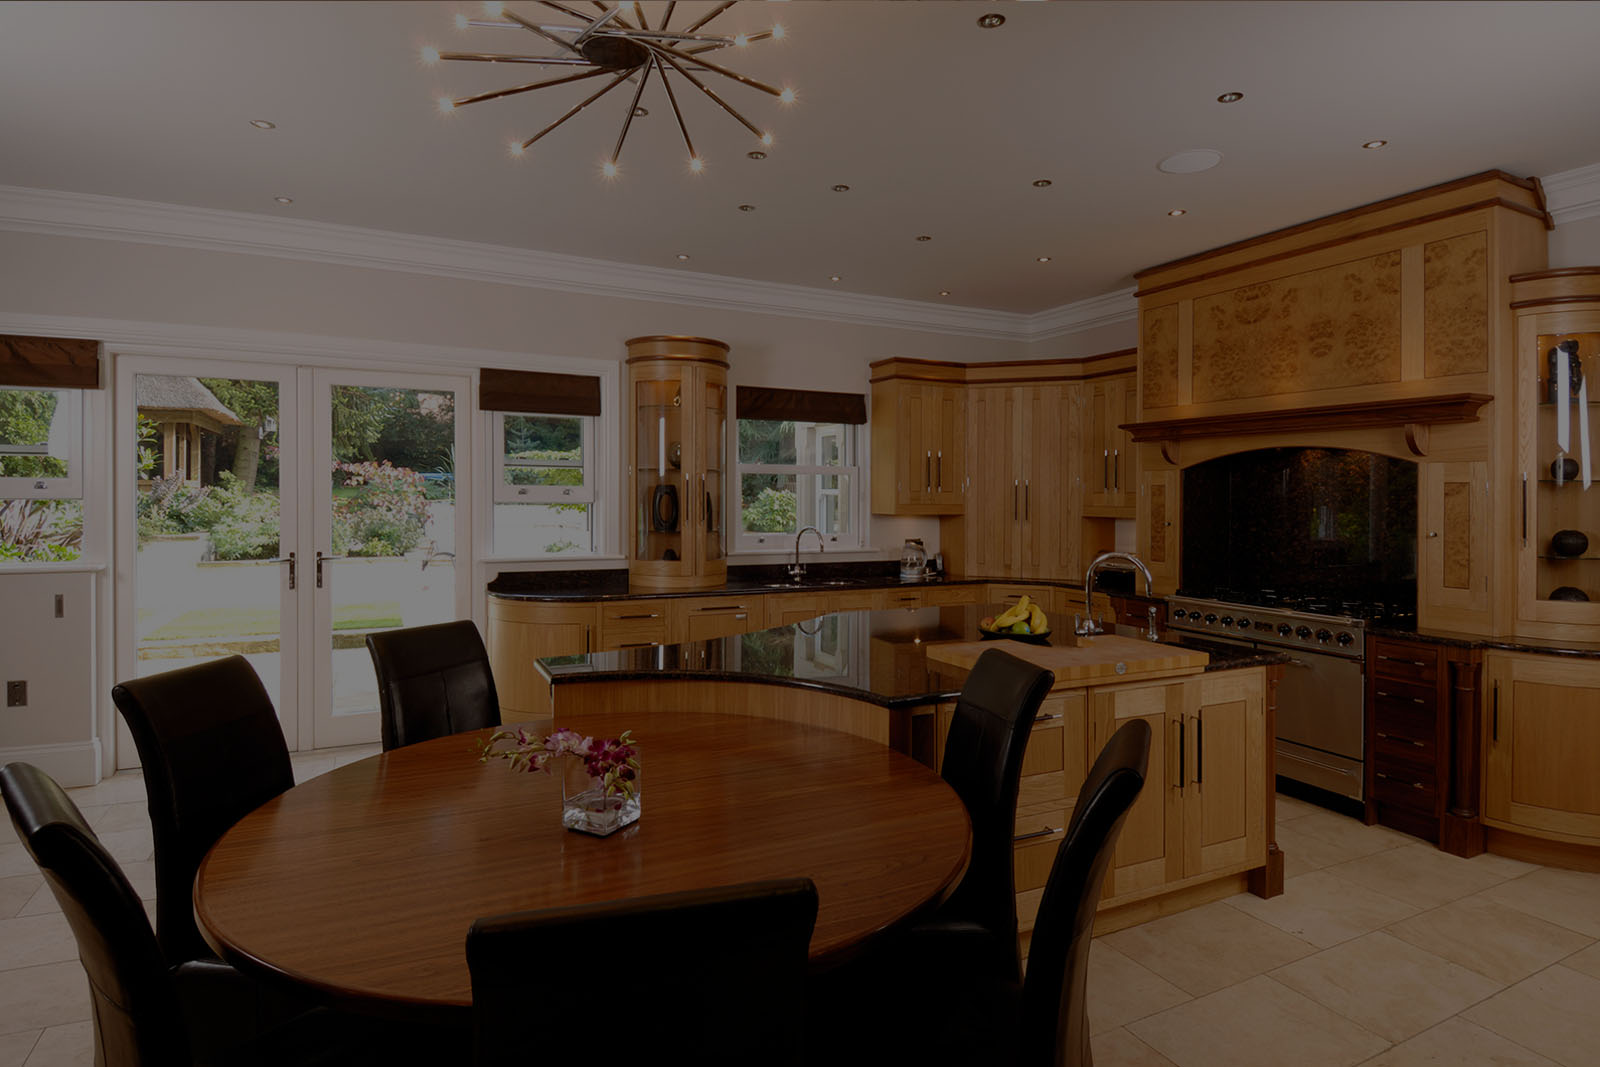 Bespoke Barcelona Kitchens Formby by Acanthus Design